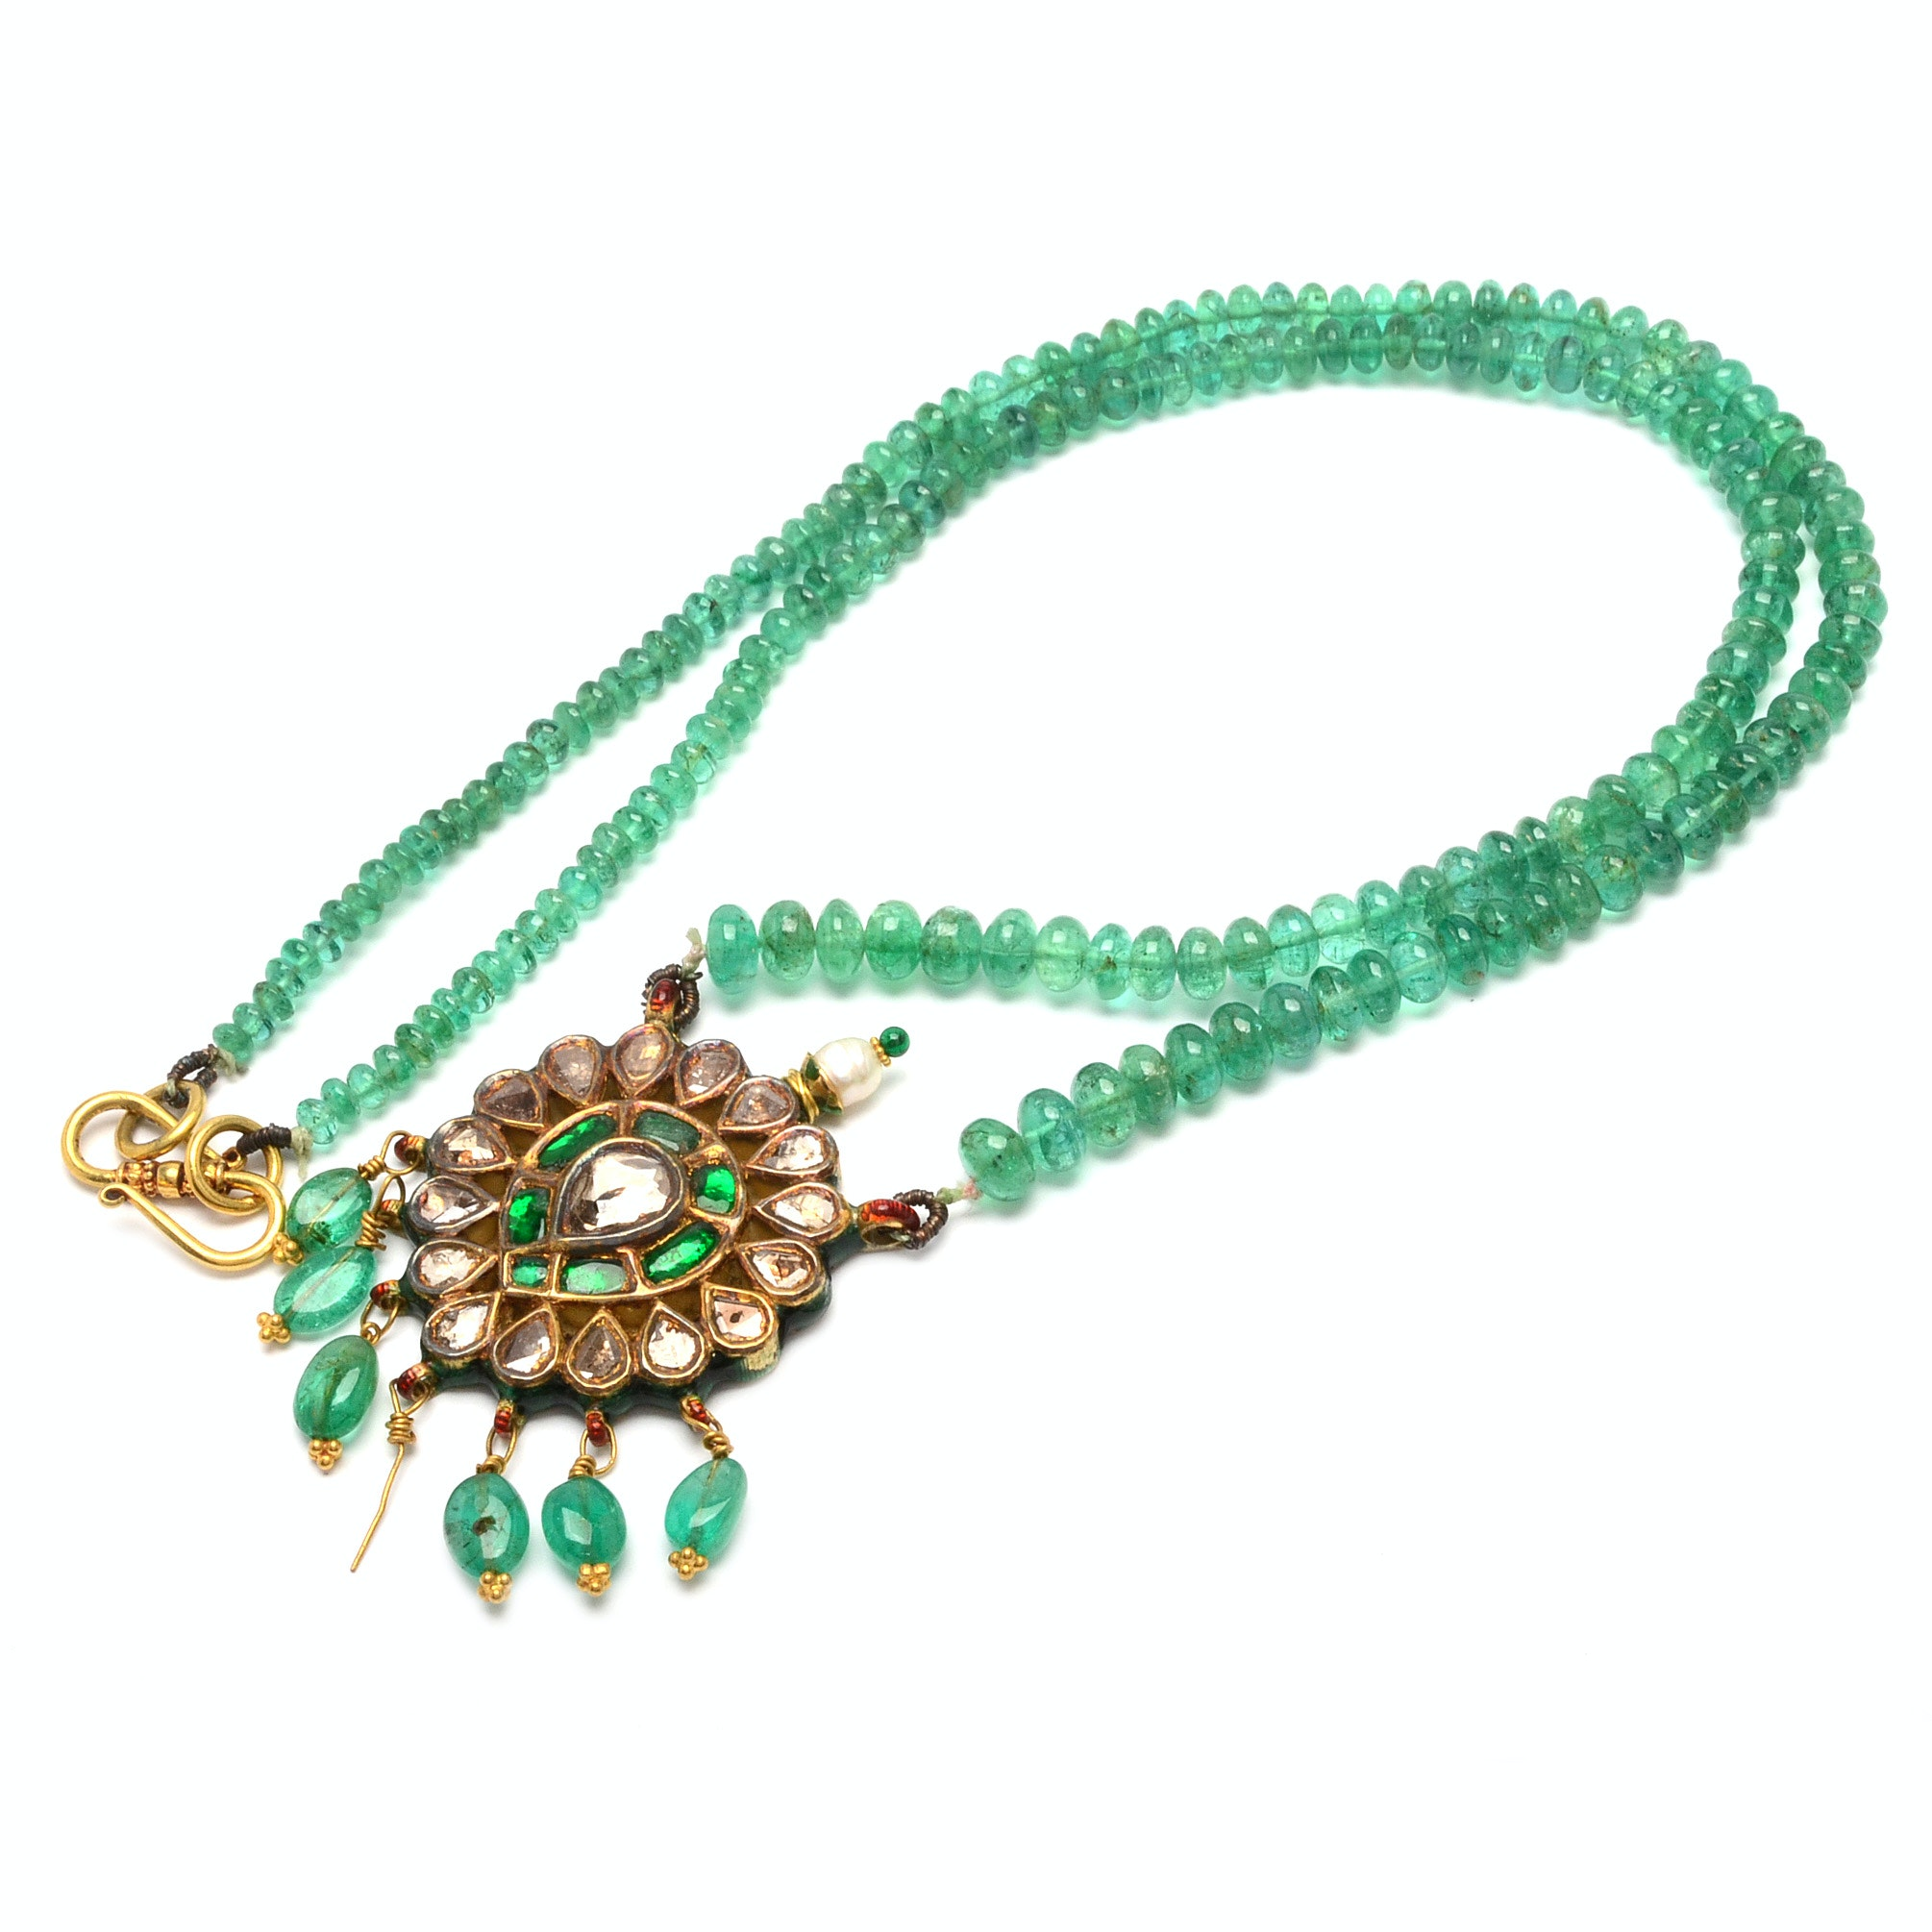 18K Gold Hand Crafted Emerald Rondelle Necklace with Emerald and Diamond Pendant